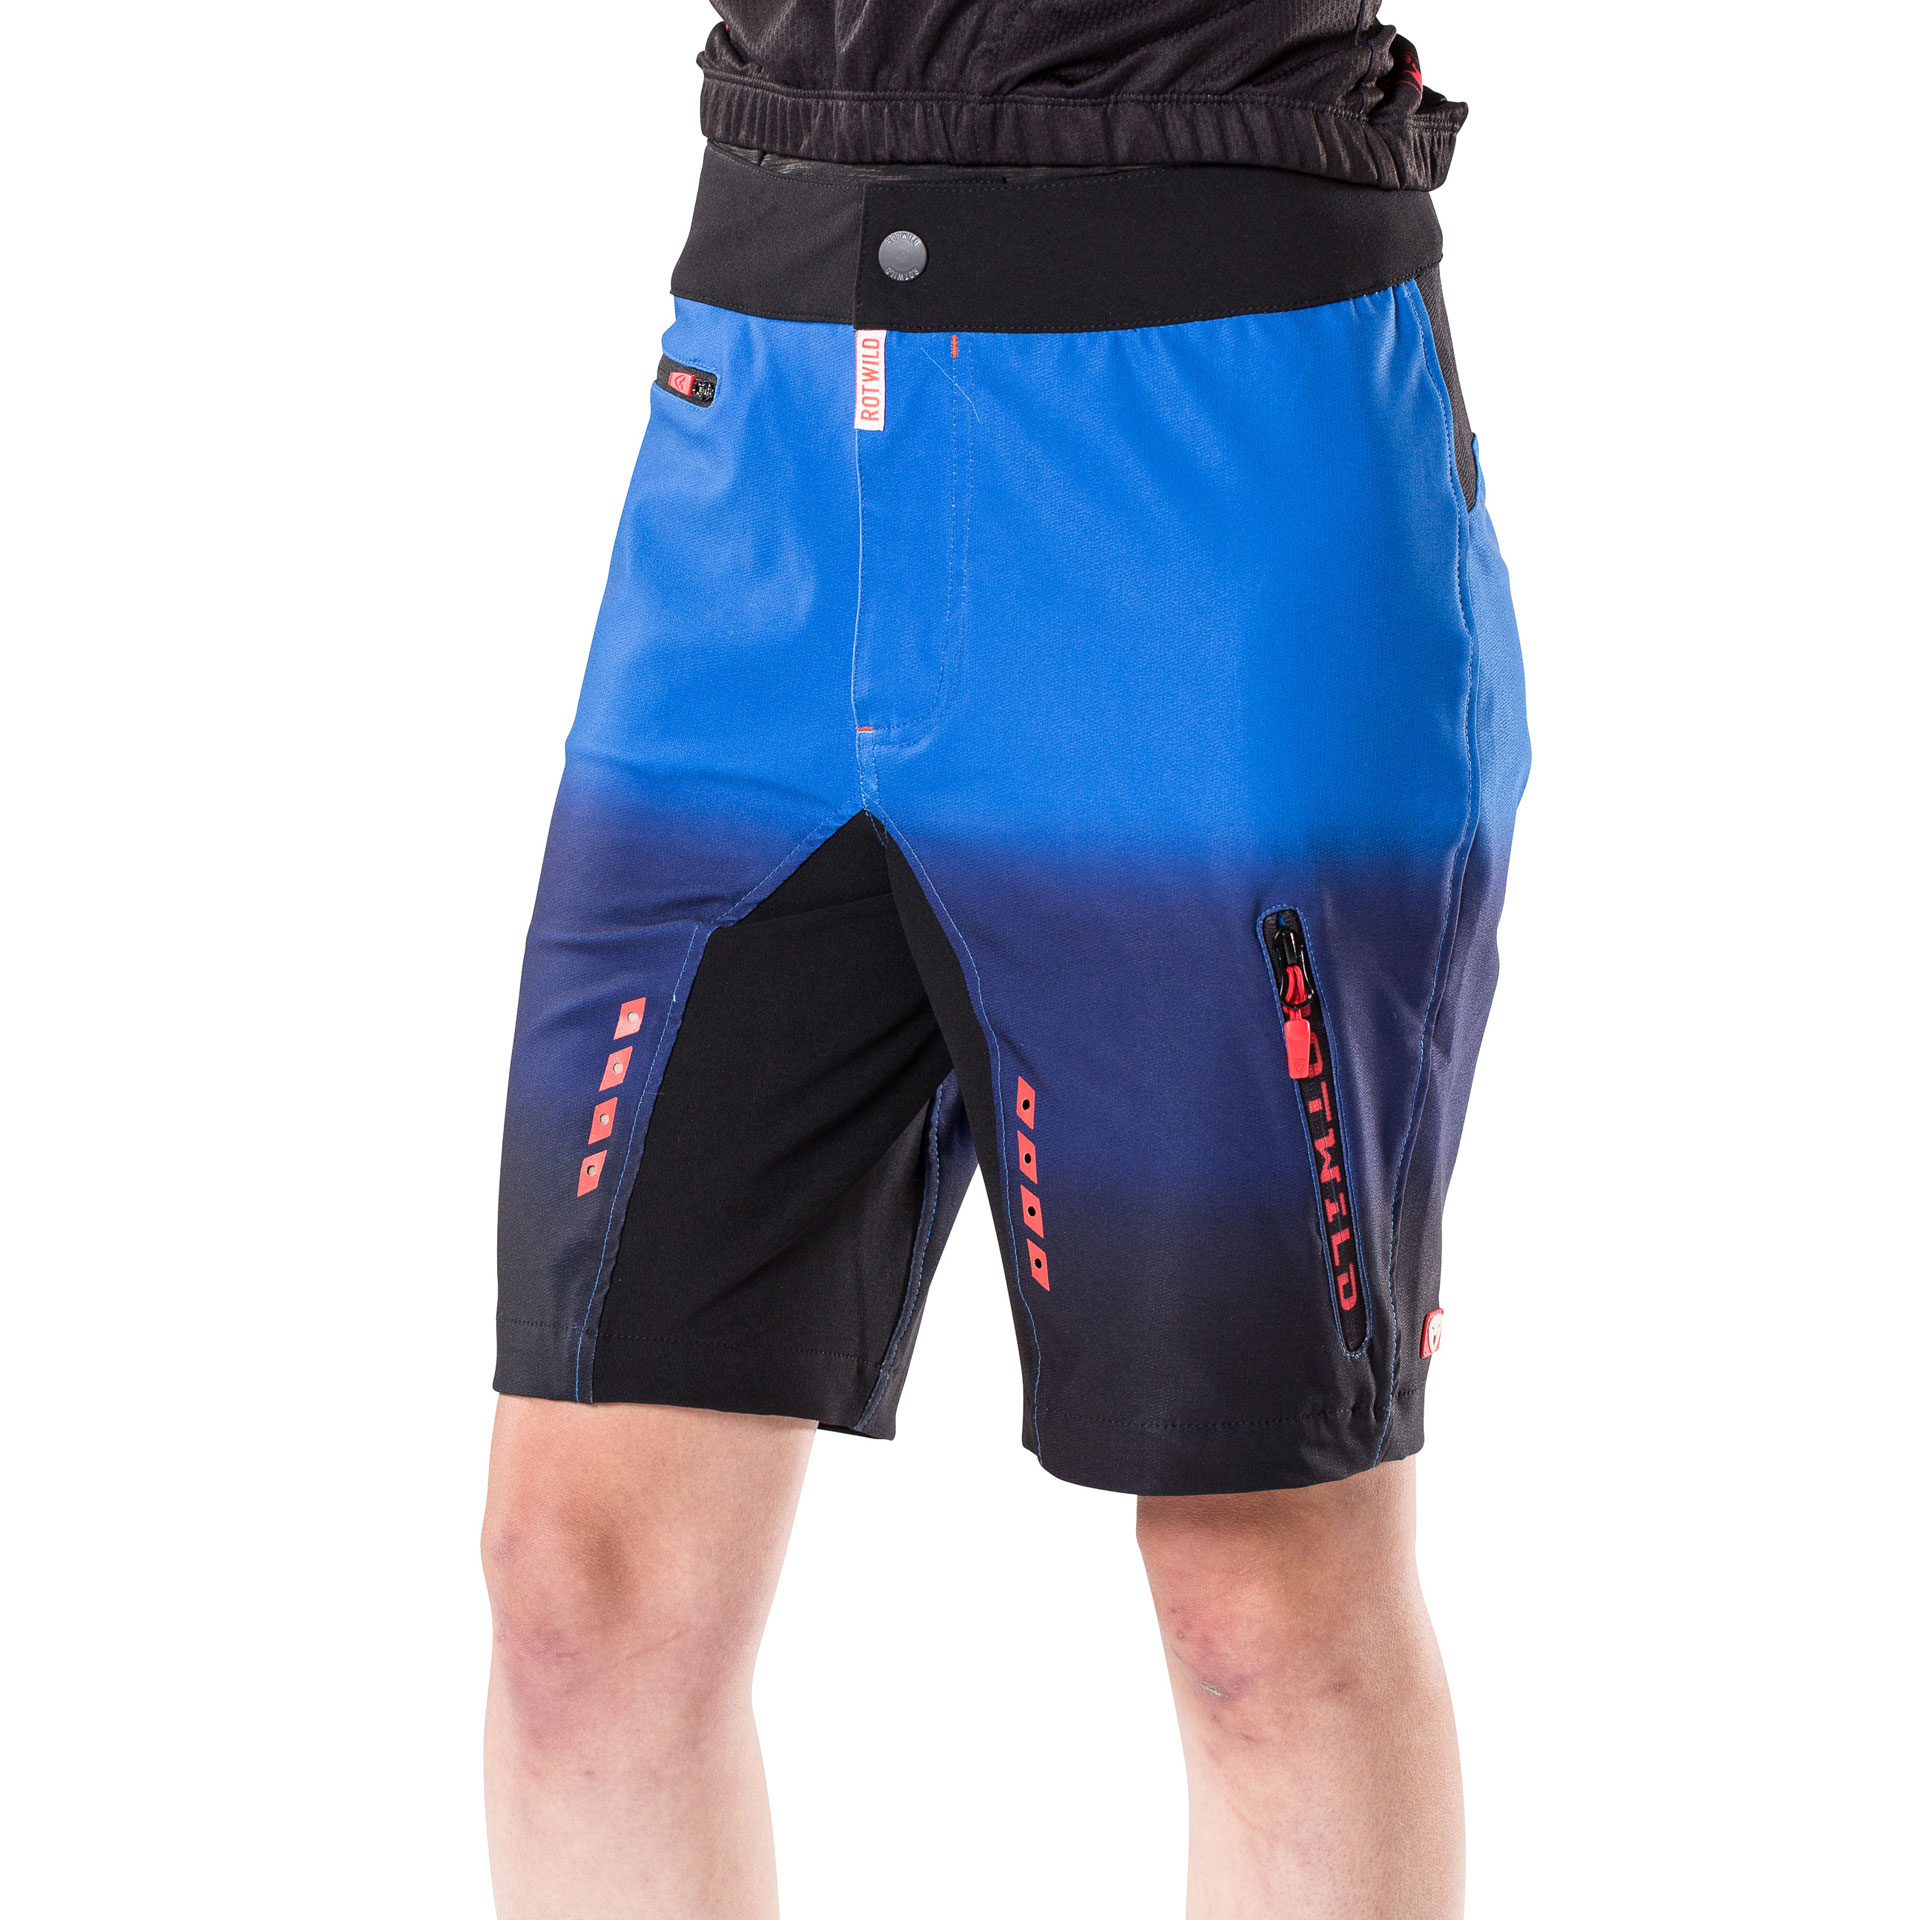 RCD GRADIENT SHORT - L - RCD GRADIENT SHORT - L